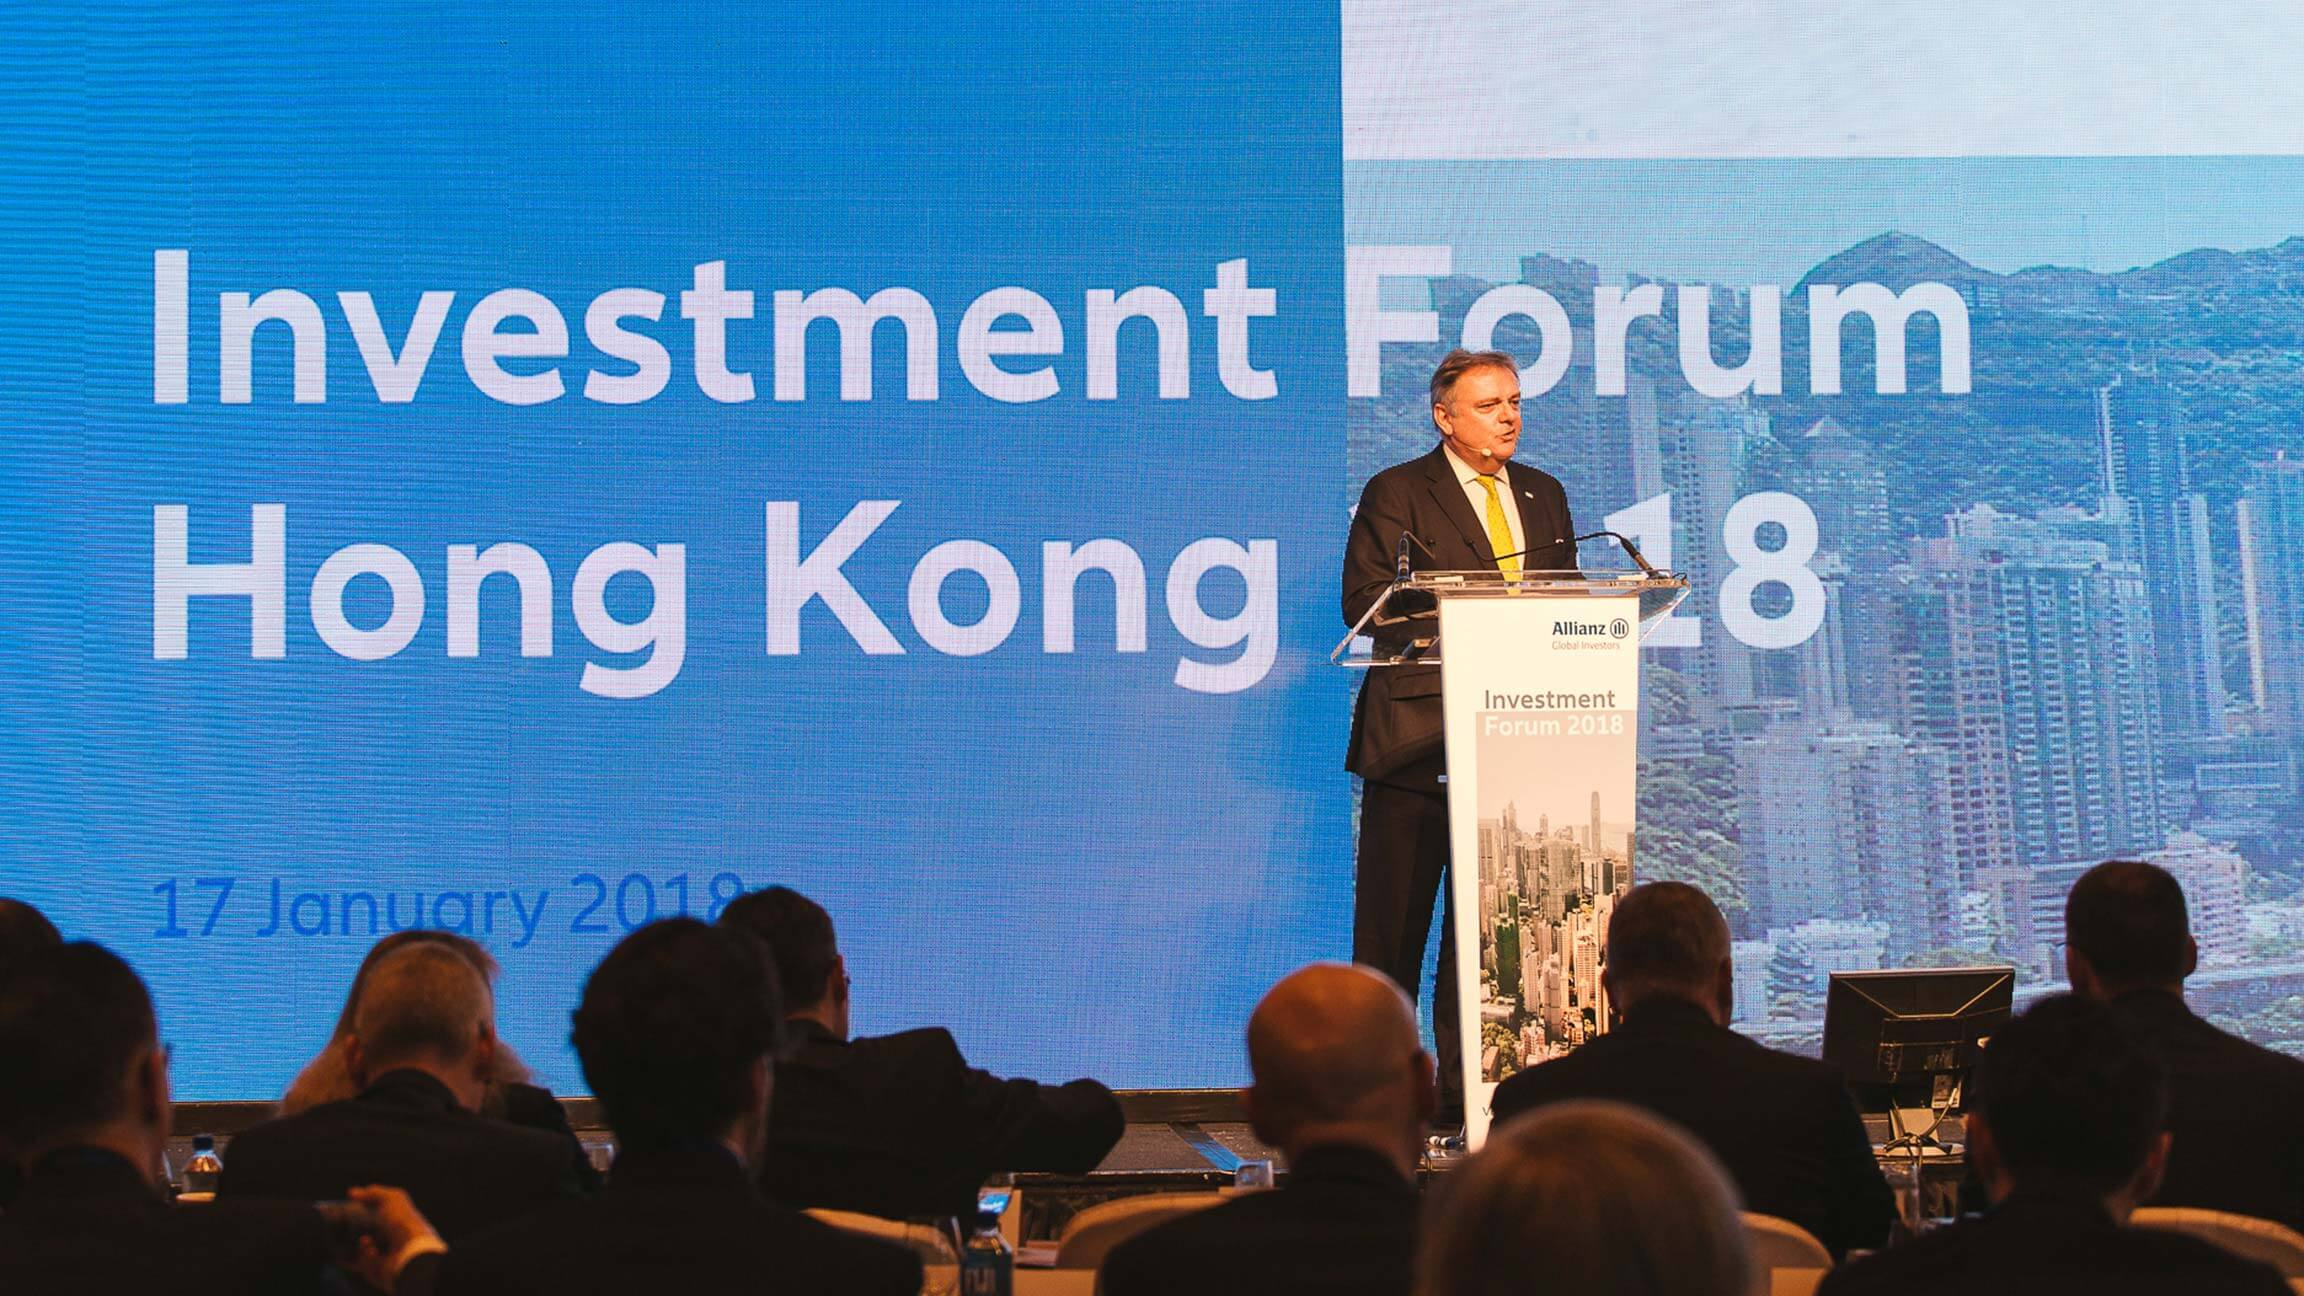 Hong Kong Investment Forum